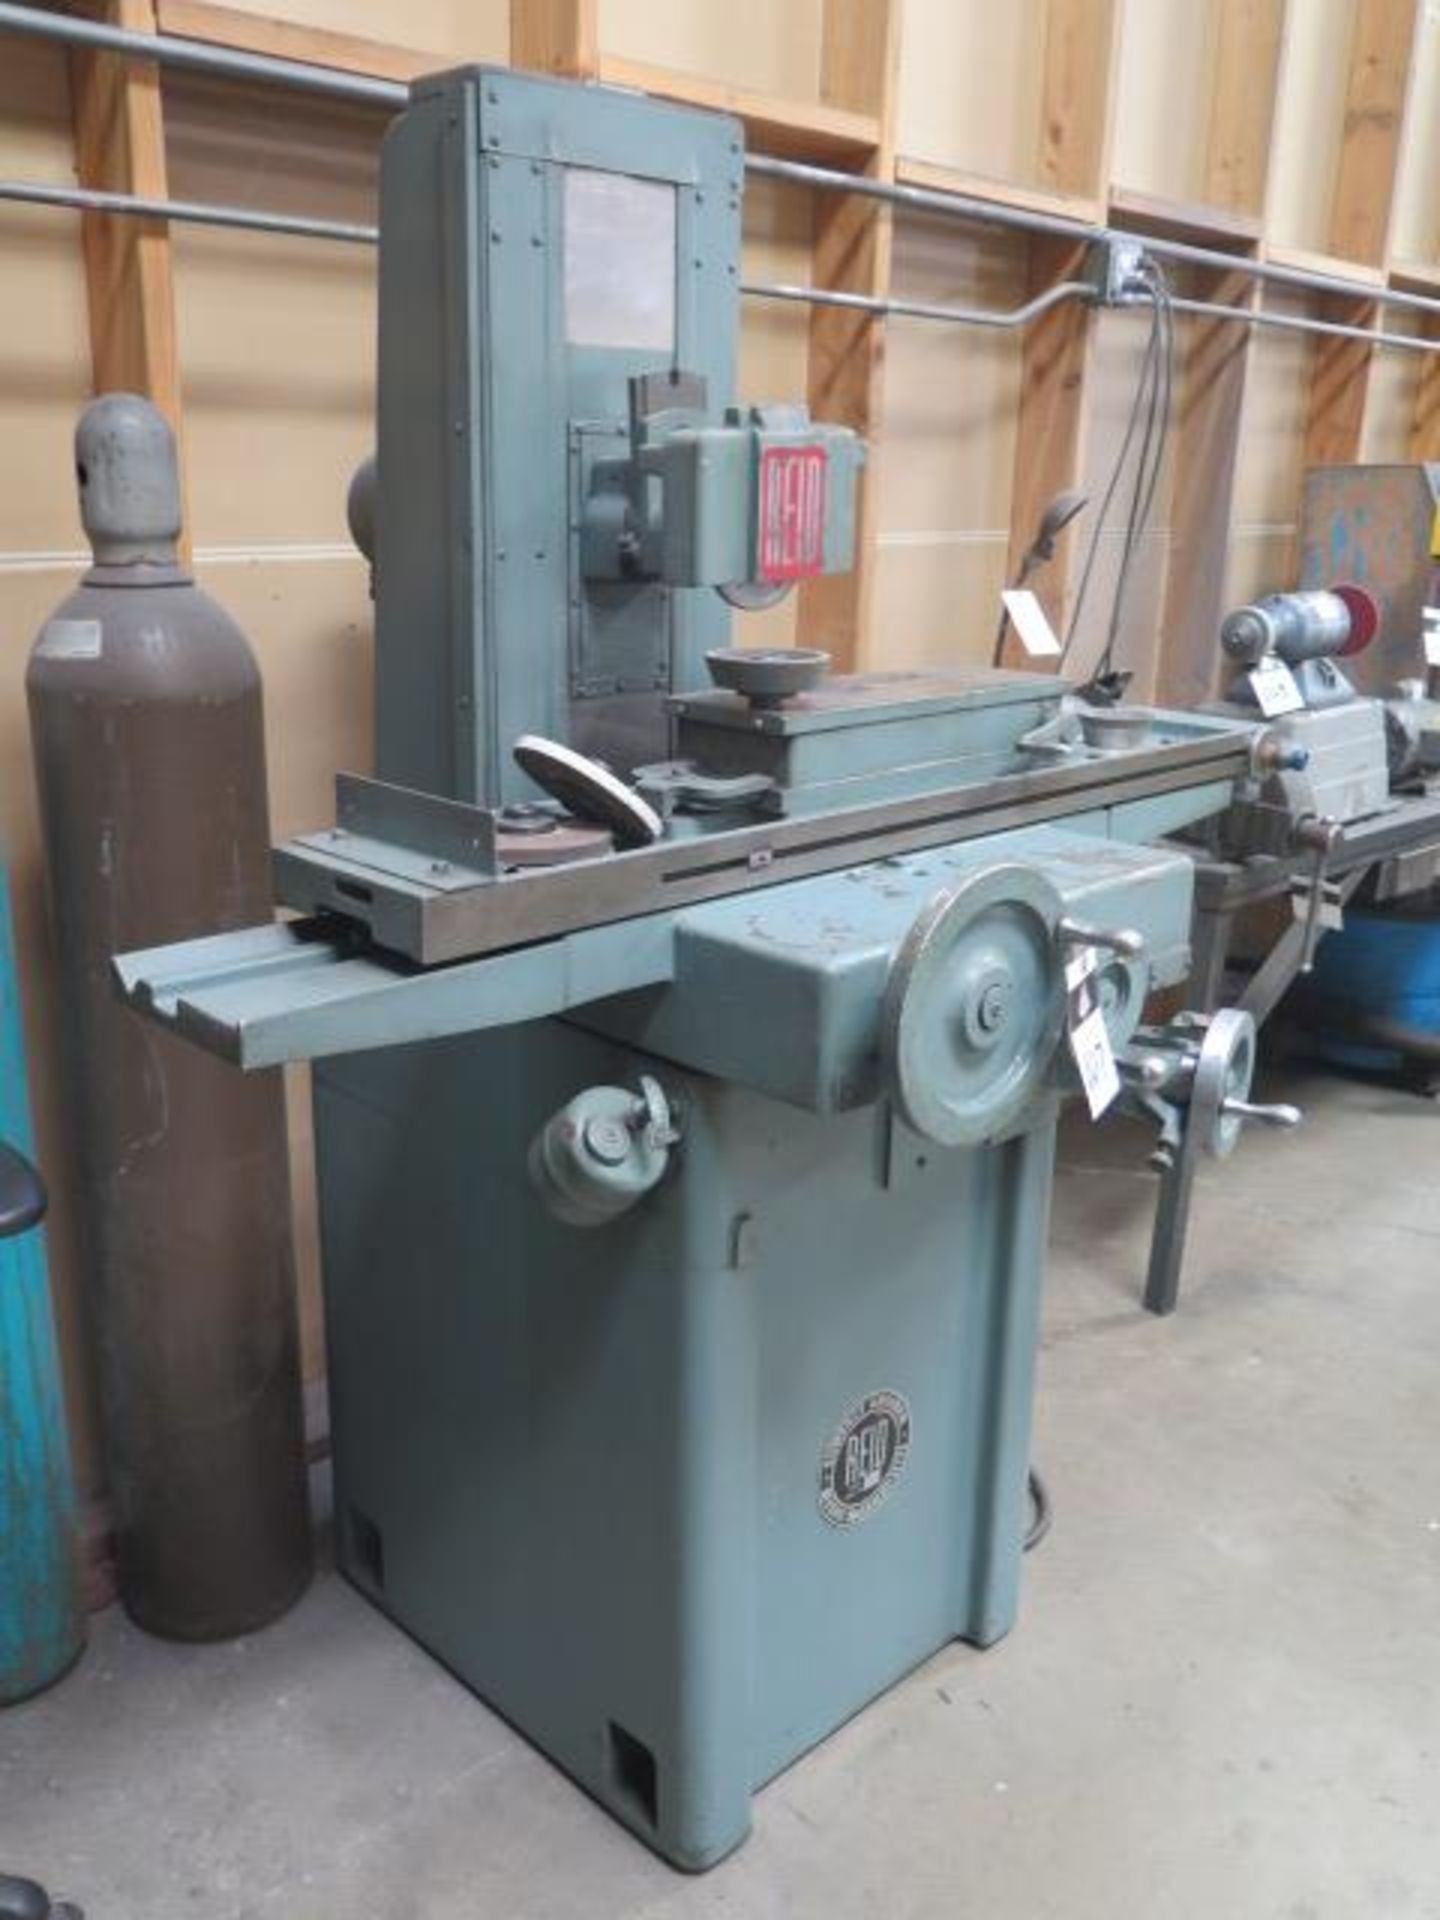 """Reid 618HA 6"""" x 18"""" Surface Grinder s/n 14554 w/ Magnetic Chuck (SOLD AS-IS - NO WARRANTY) - Image 3 of 9"""